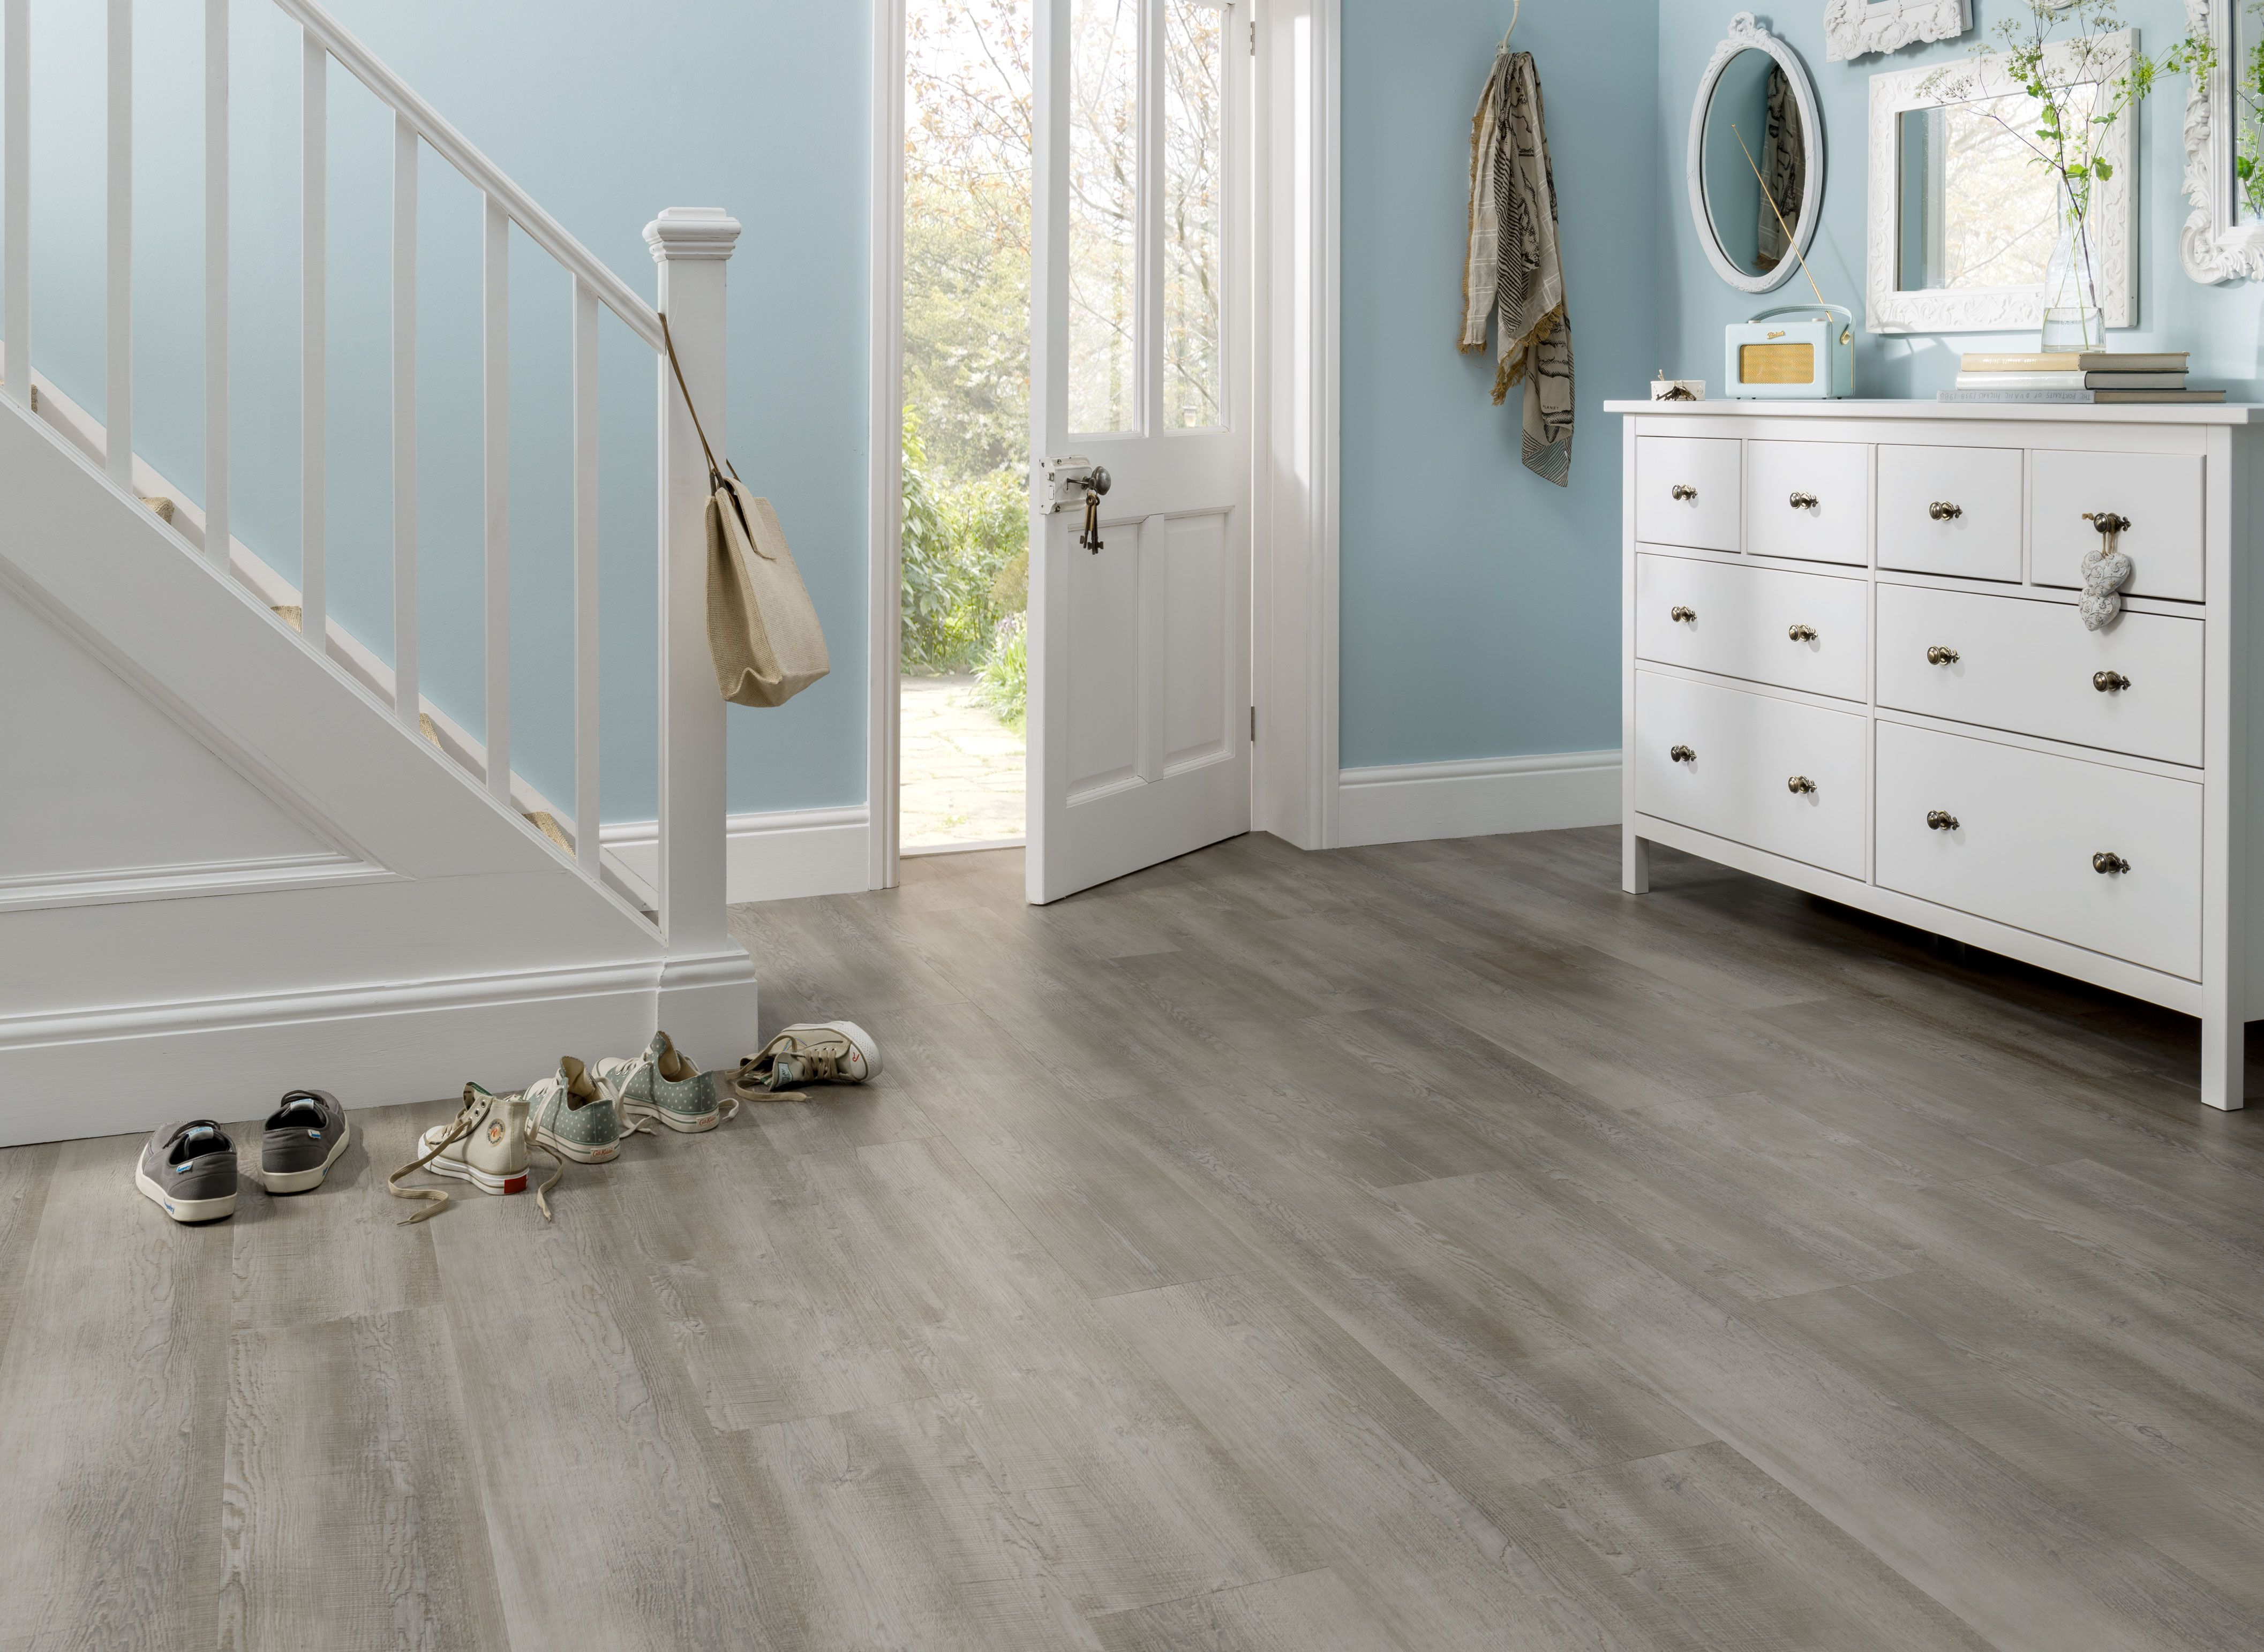 Karndean Wood Flooring   Magna By @KarndeanFloors Available From Rodgers Of  York #flooring #interiors